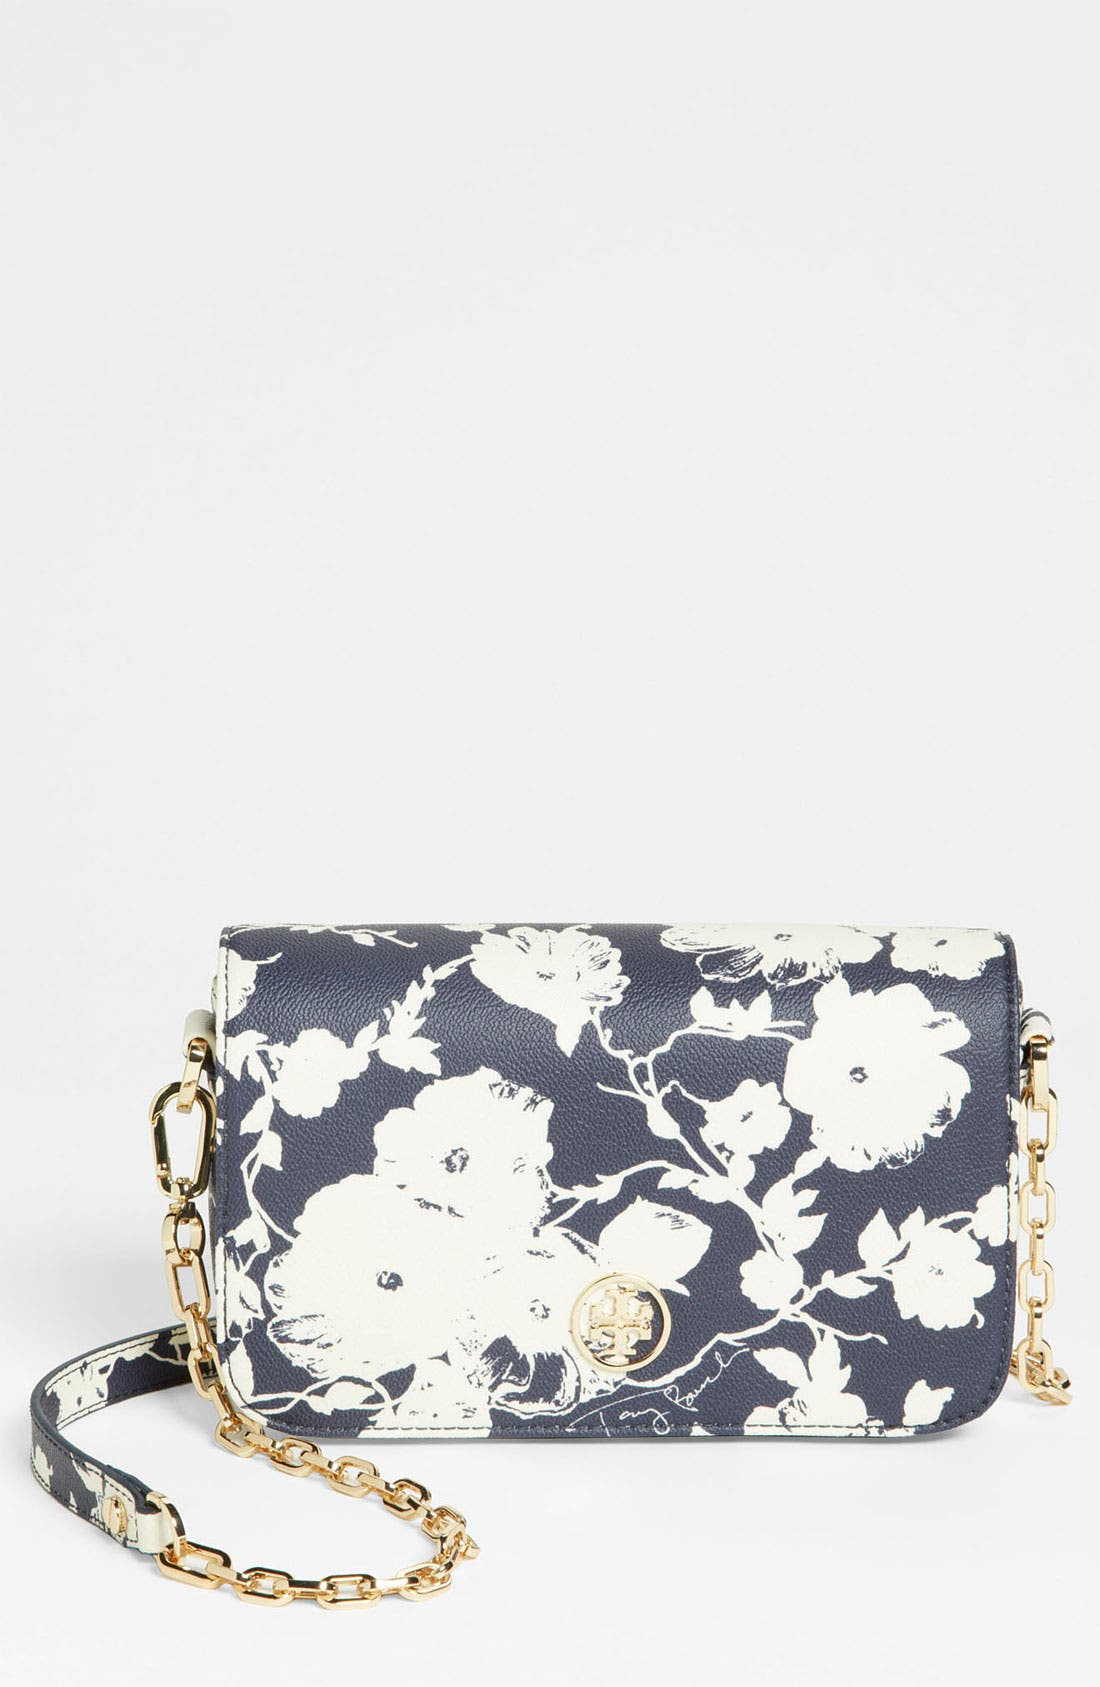 Main Image - Tory Burch 'Robinson - Mini' Print Leather Adjustable Crossbody Bag